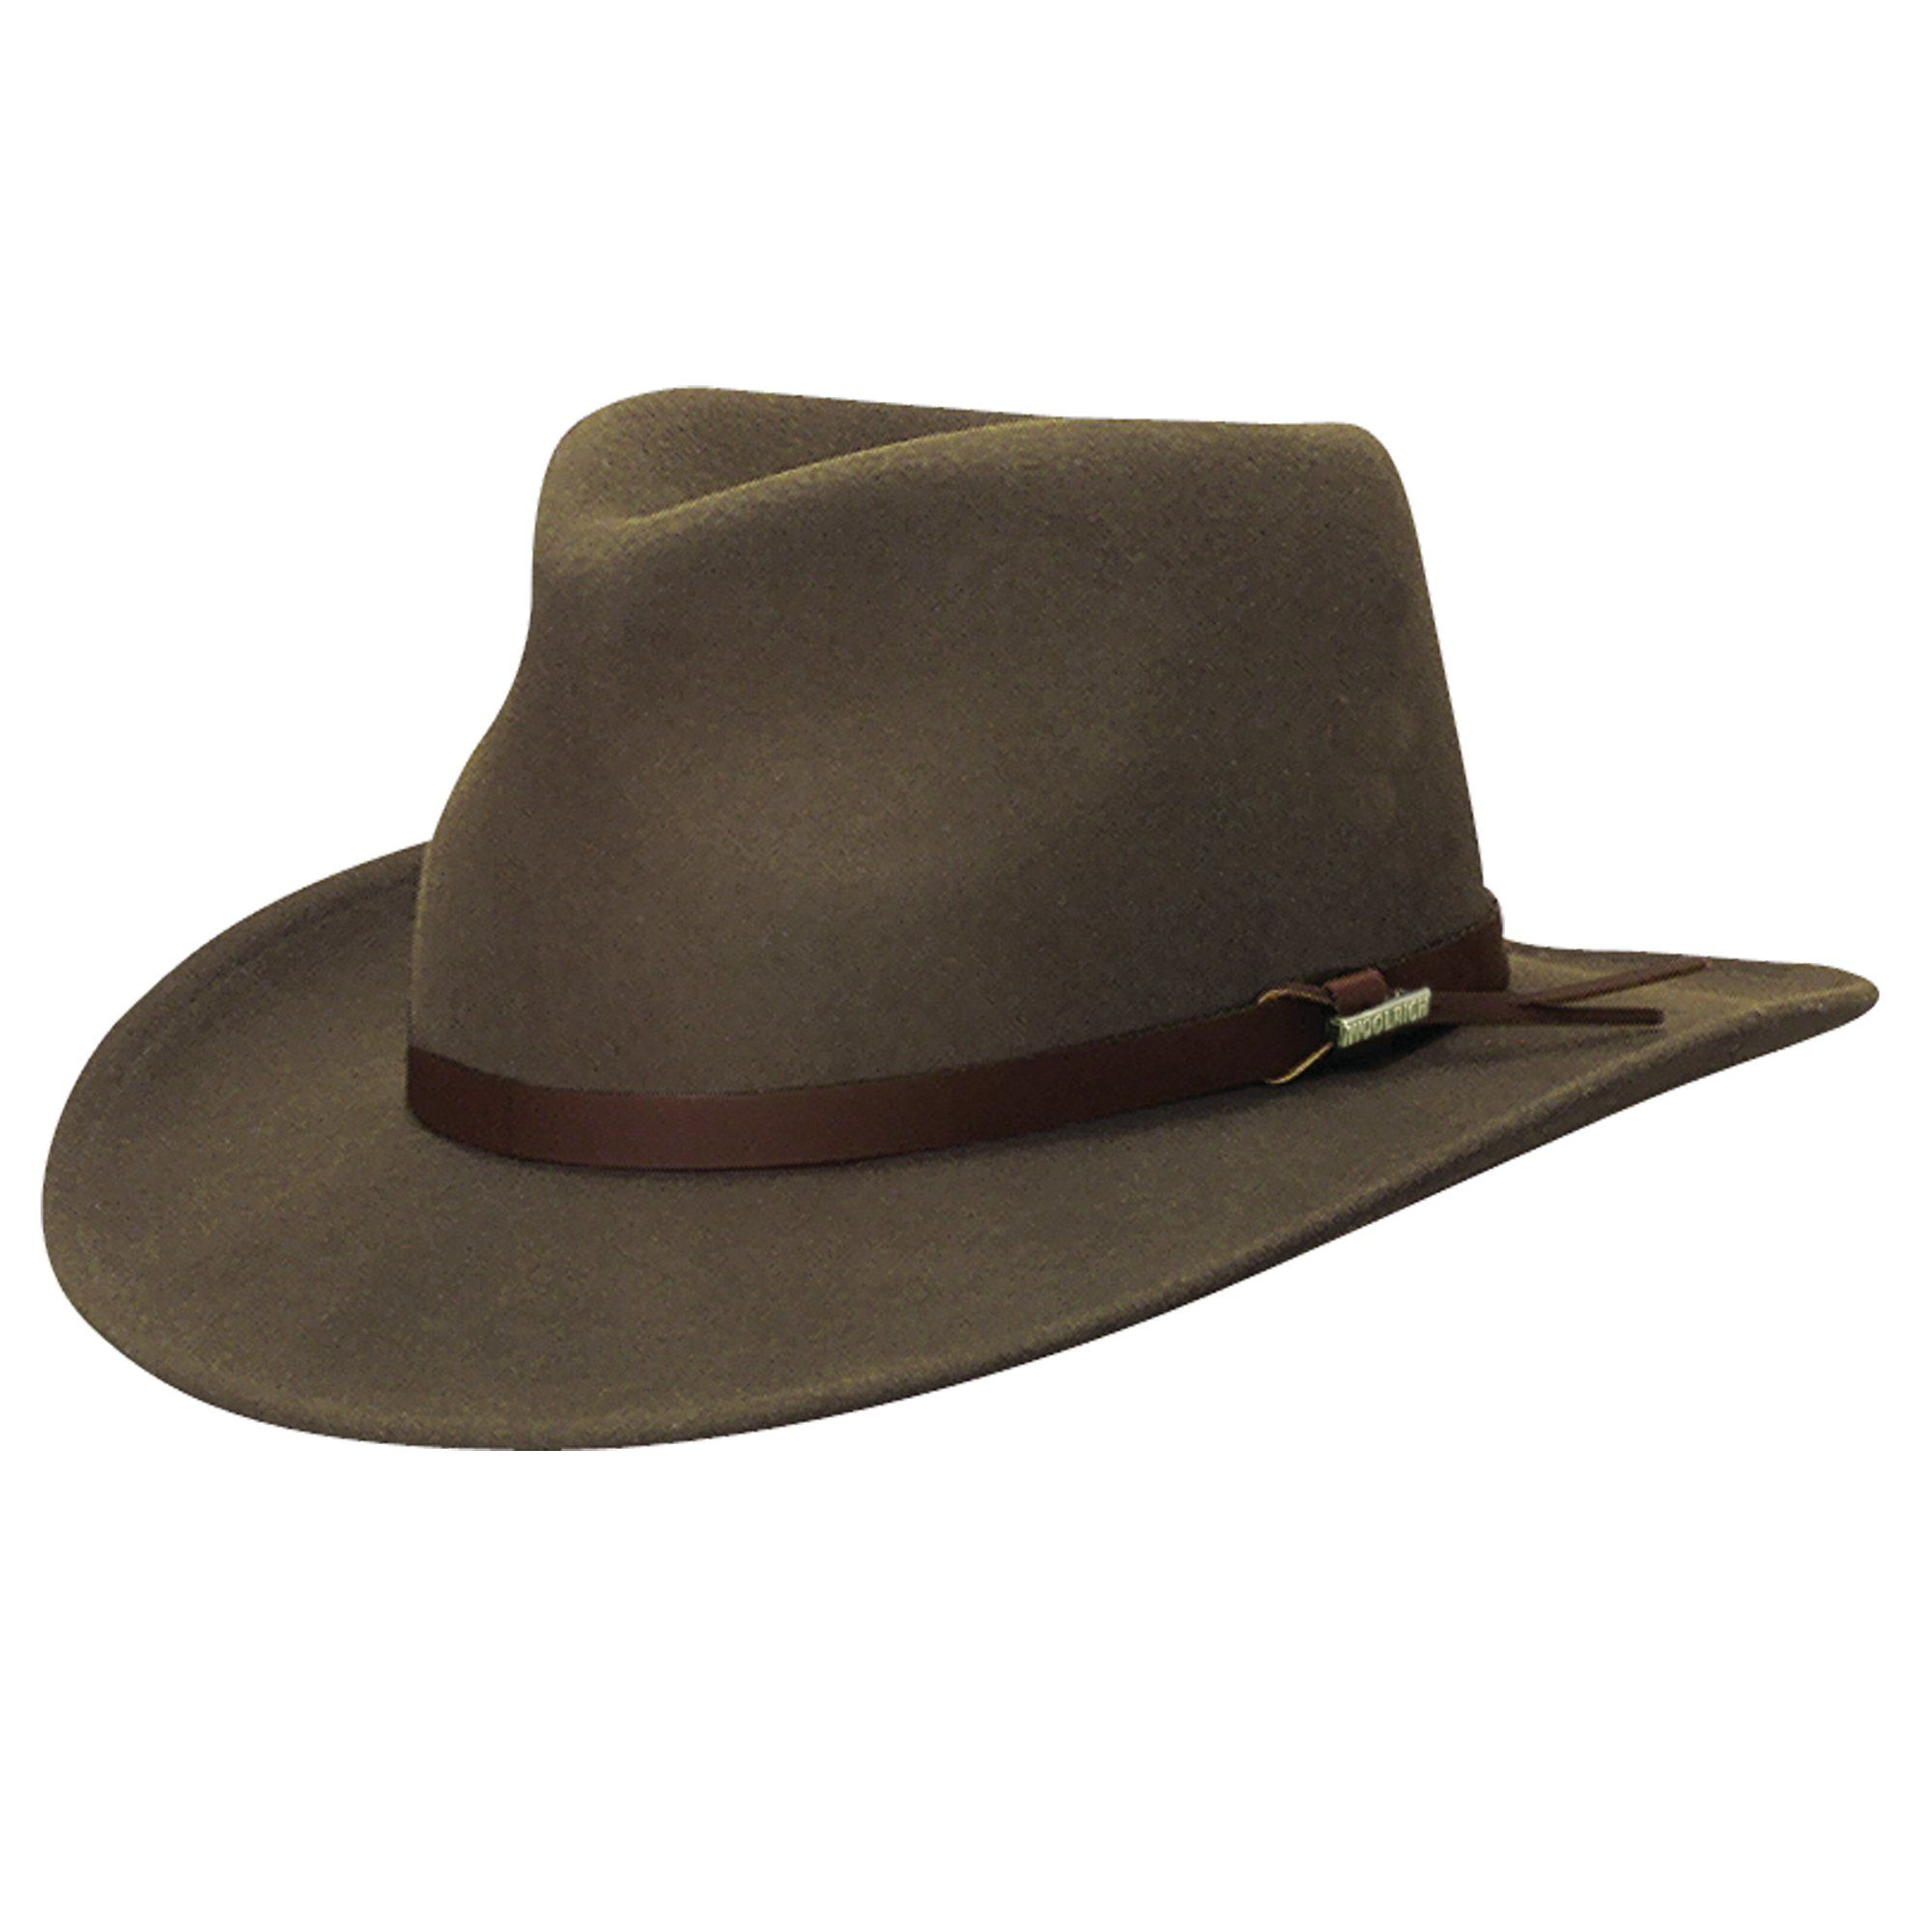 Woolrich Mens Crushable Water Repellent Wool Felt Safari Outback Hat